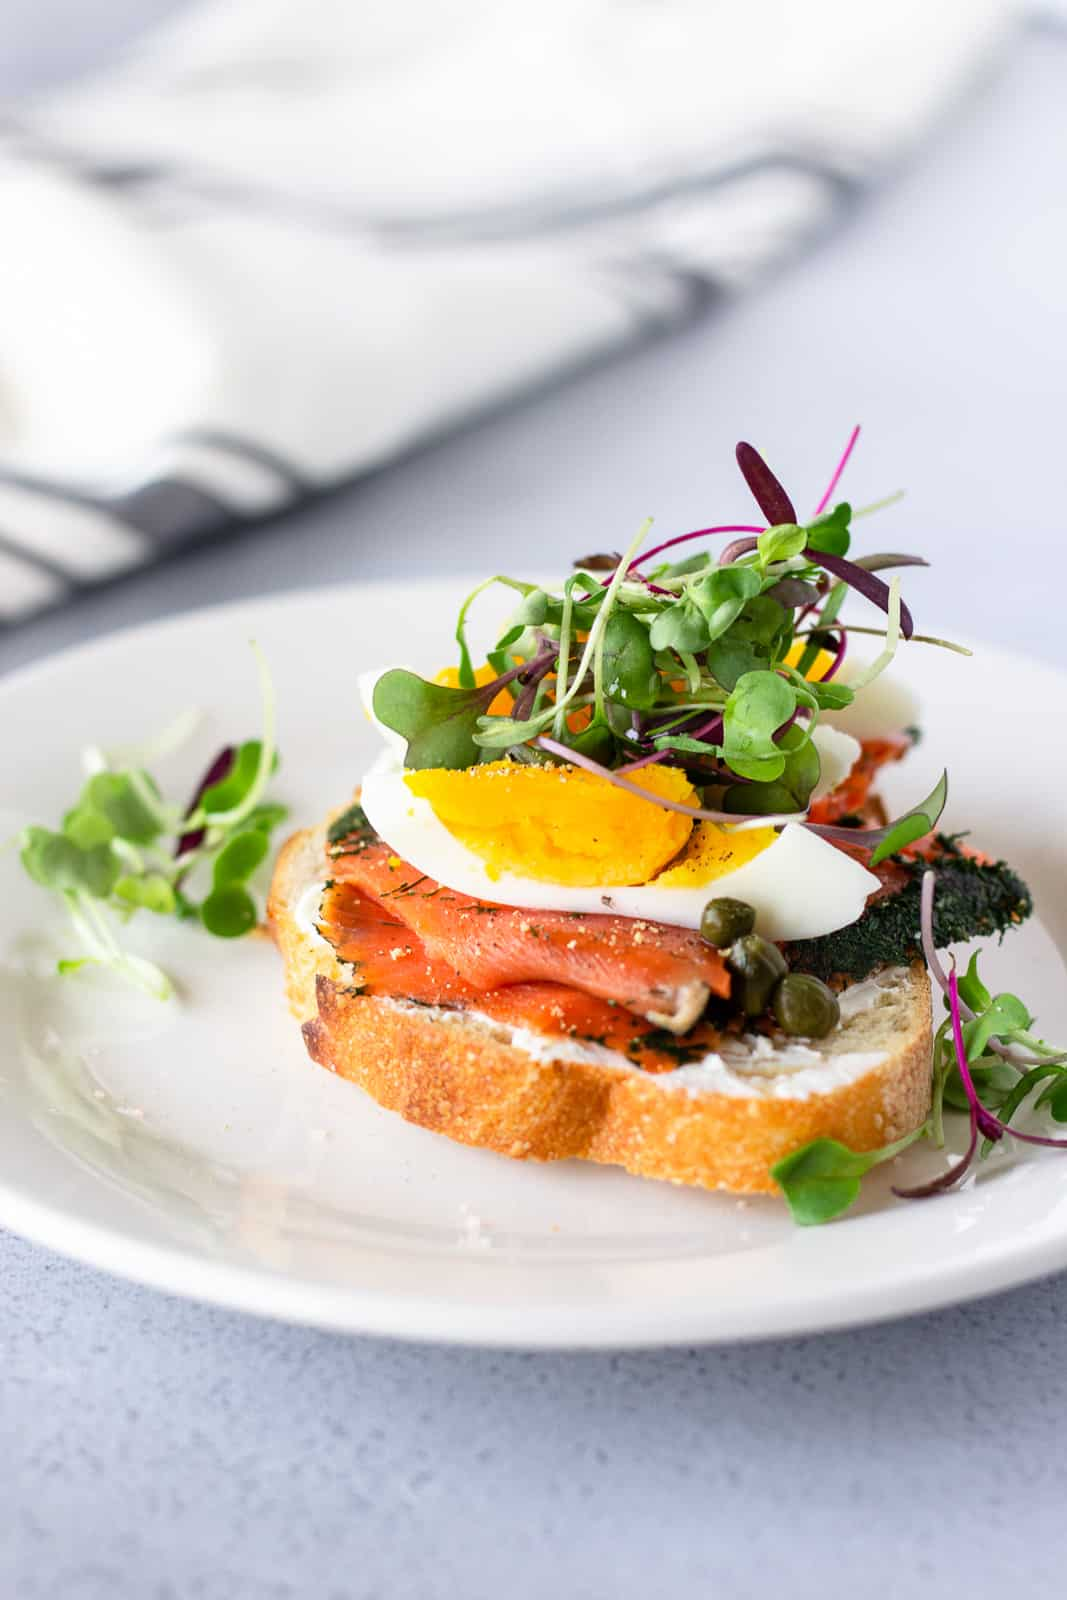 Salmon lox toast with hard boiled egg and micro greens on top